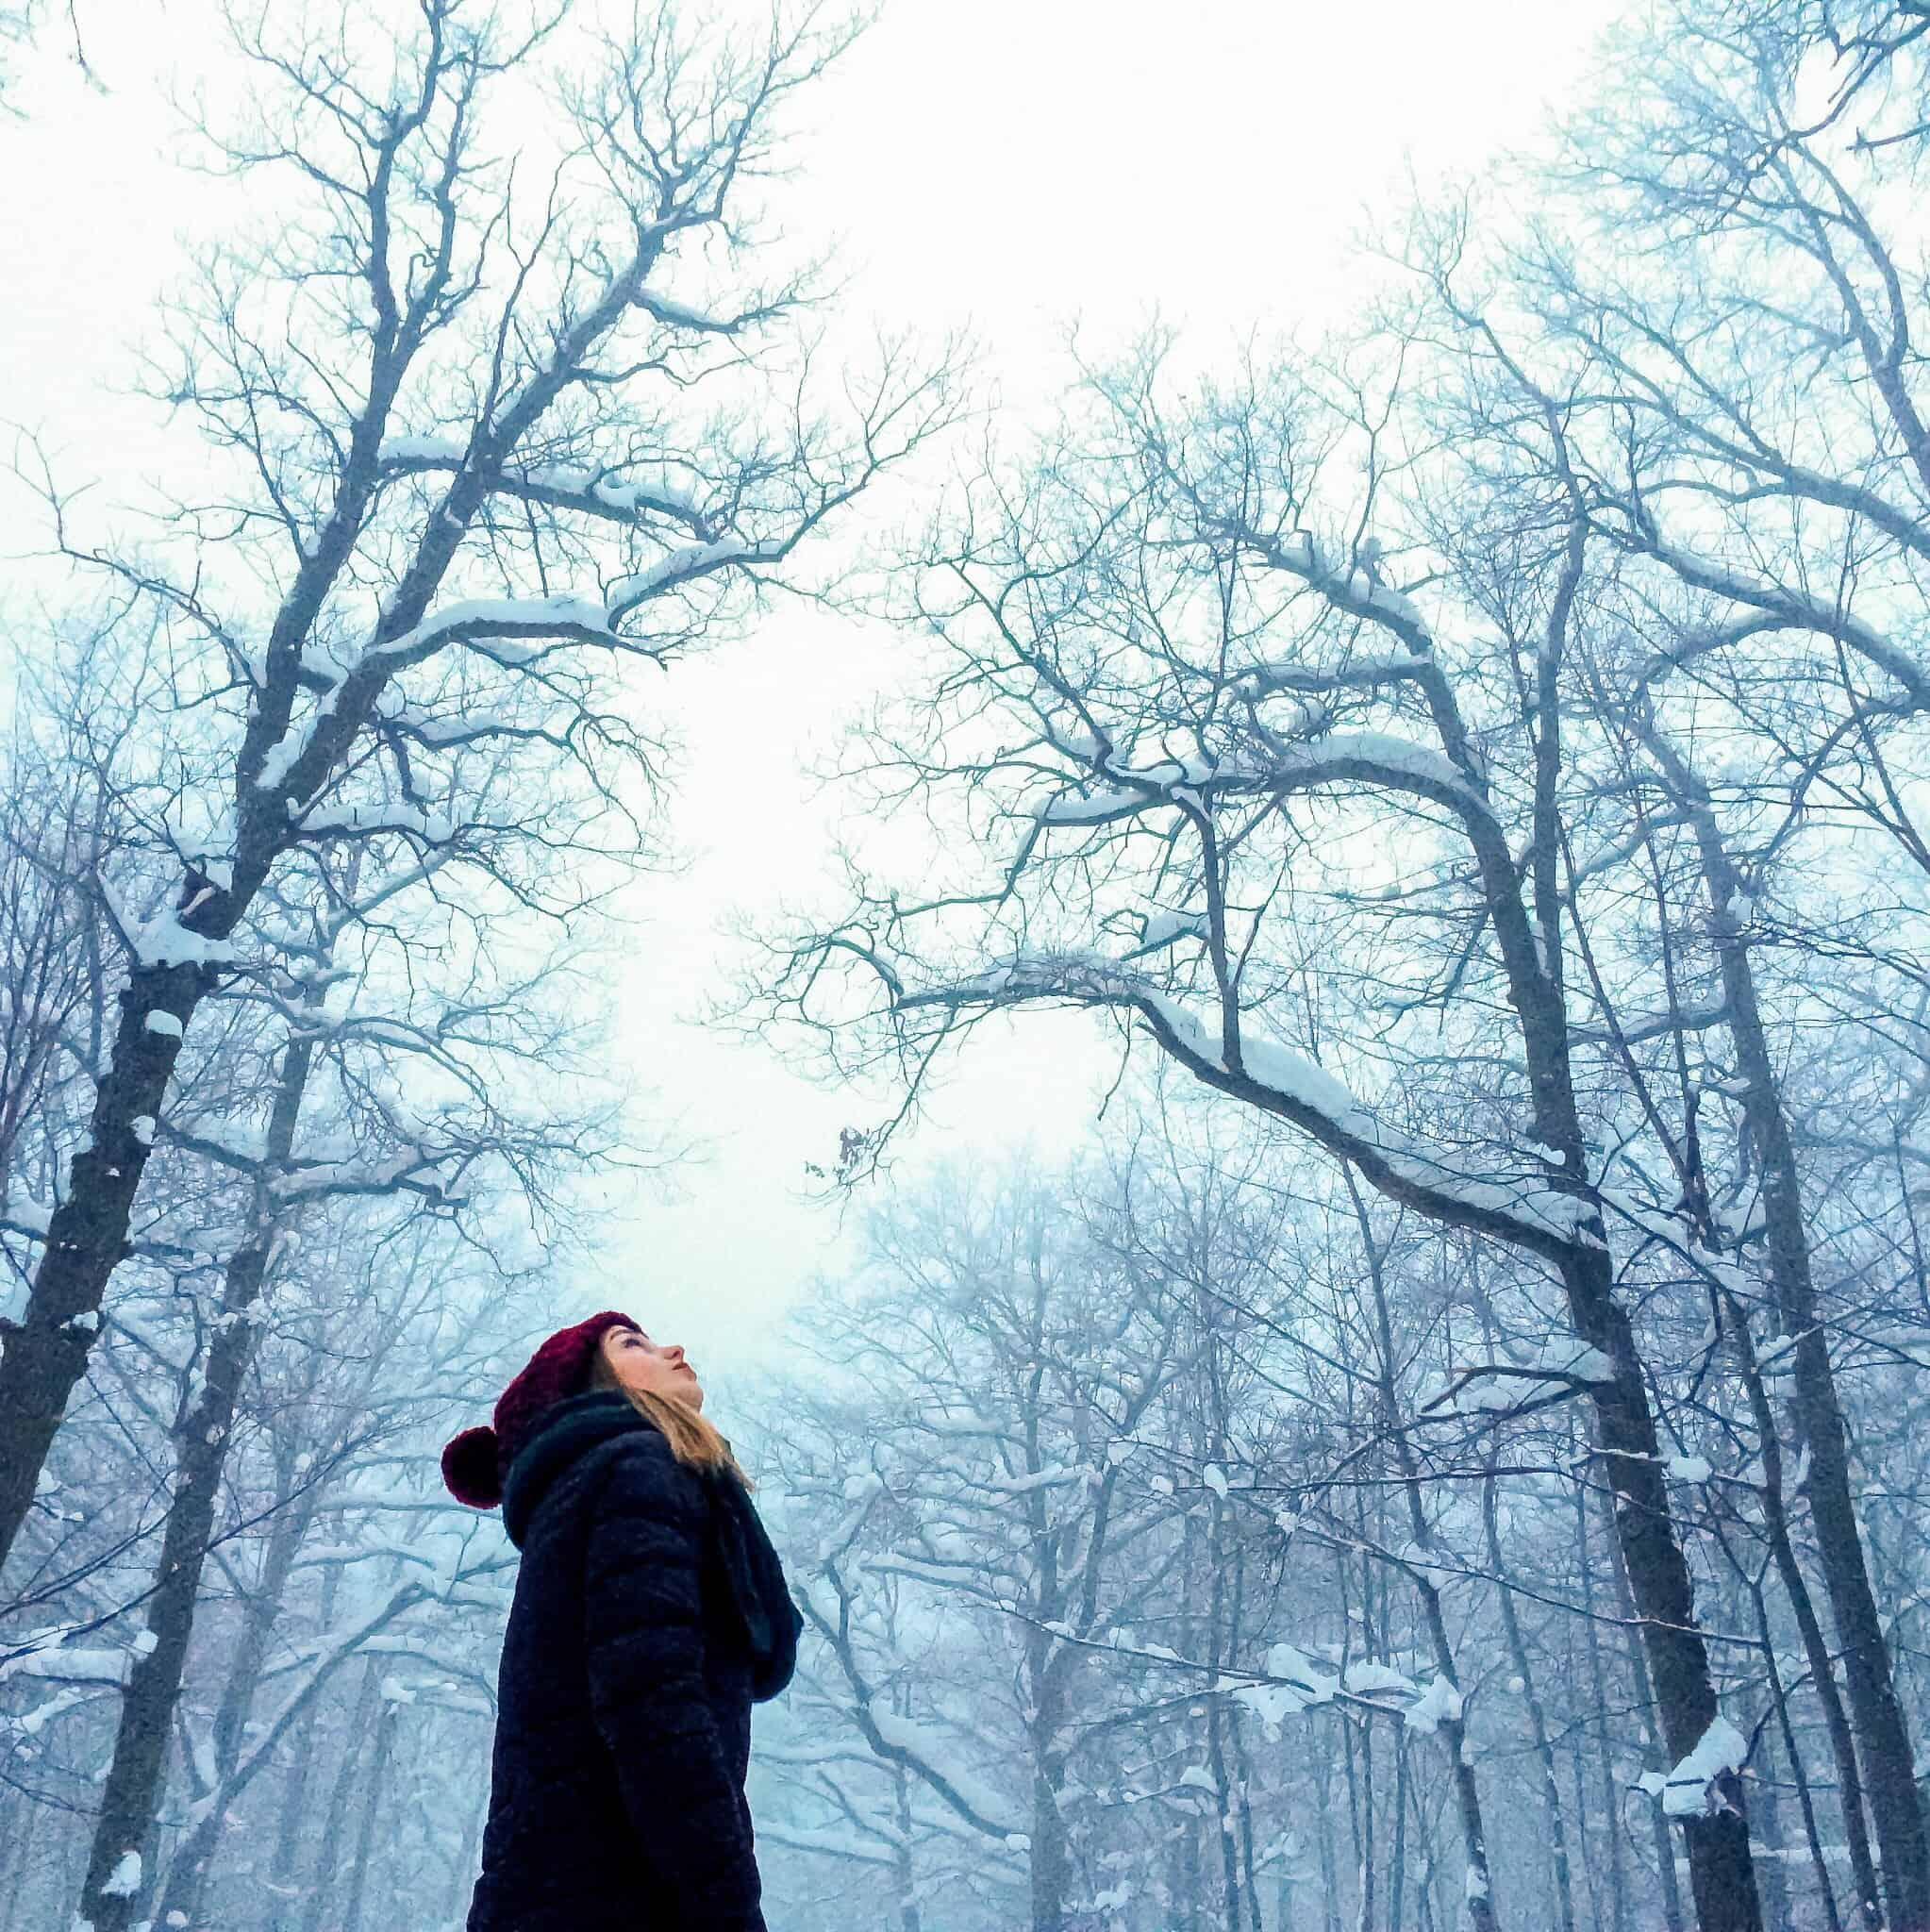 Woman in snowy forest